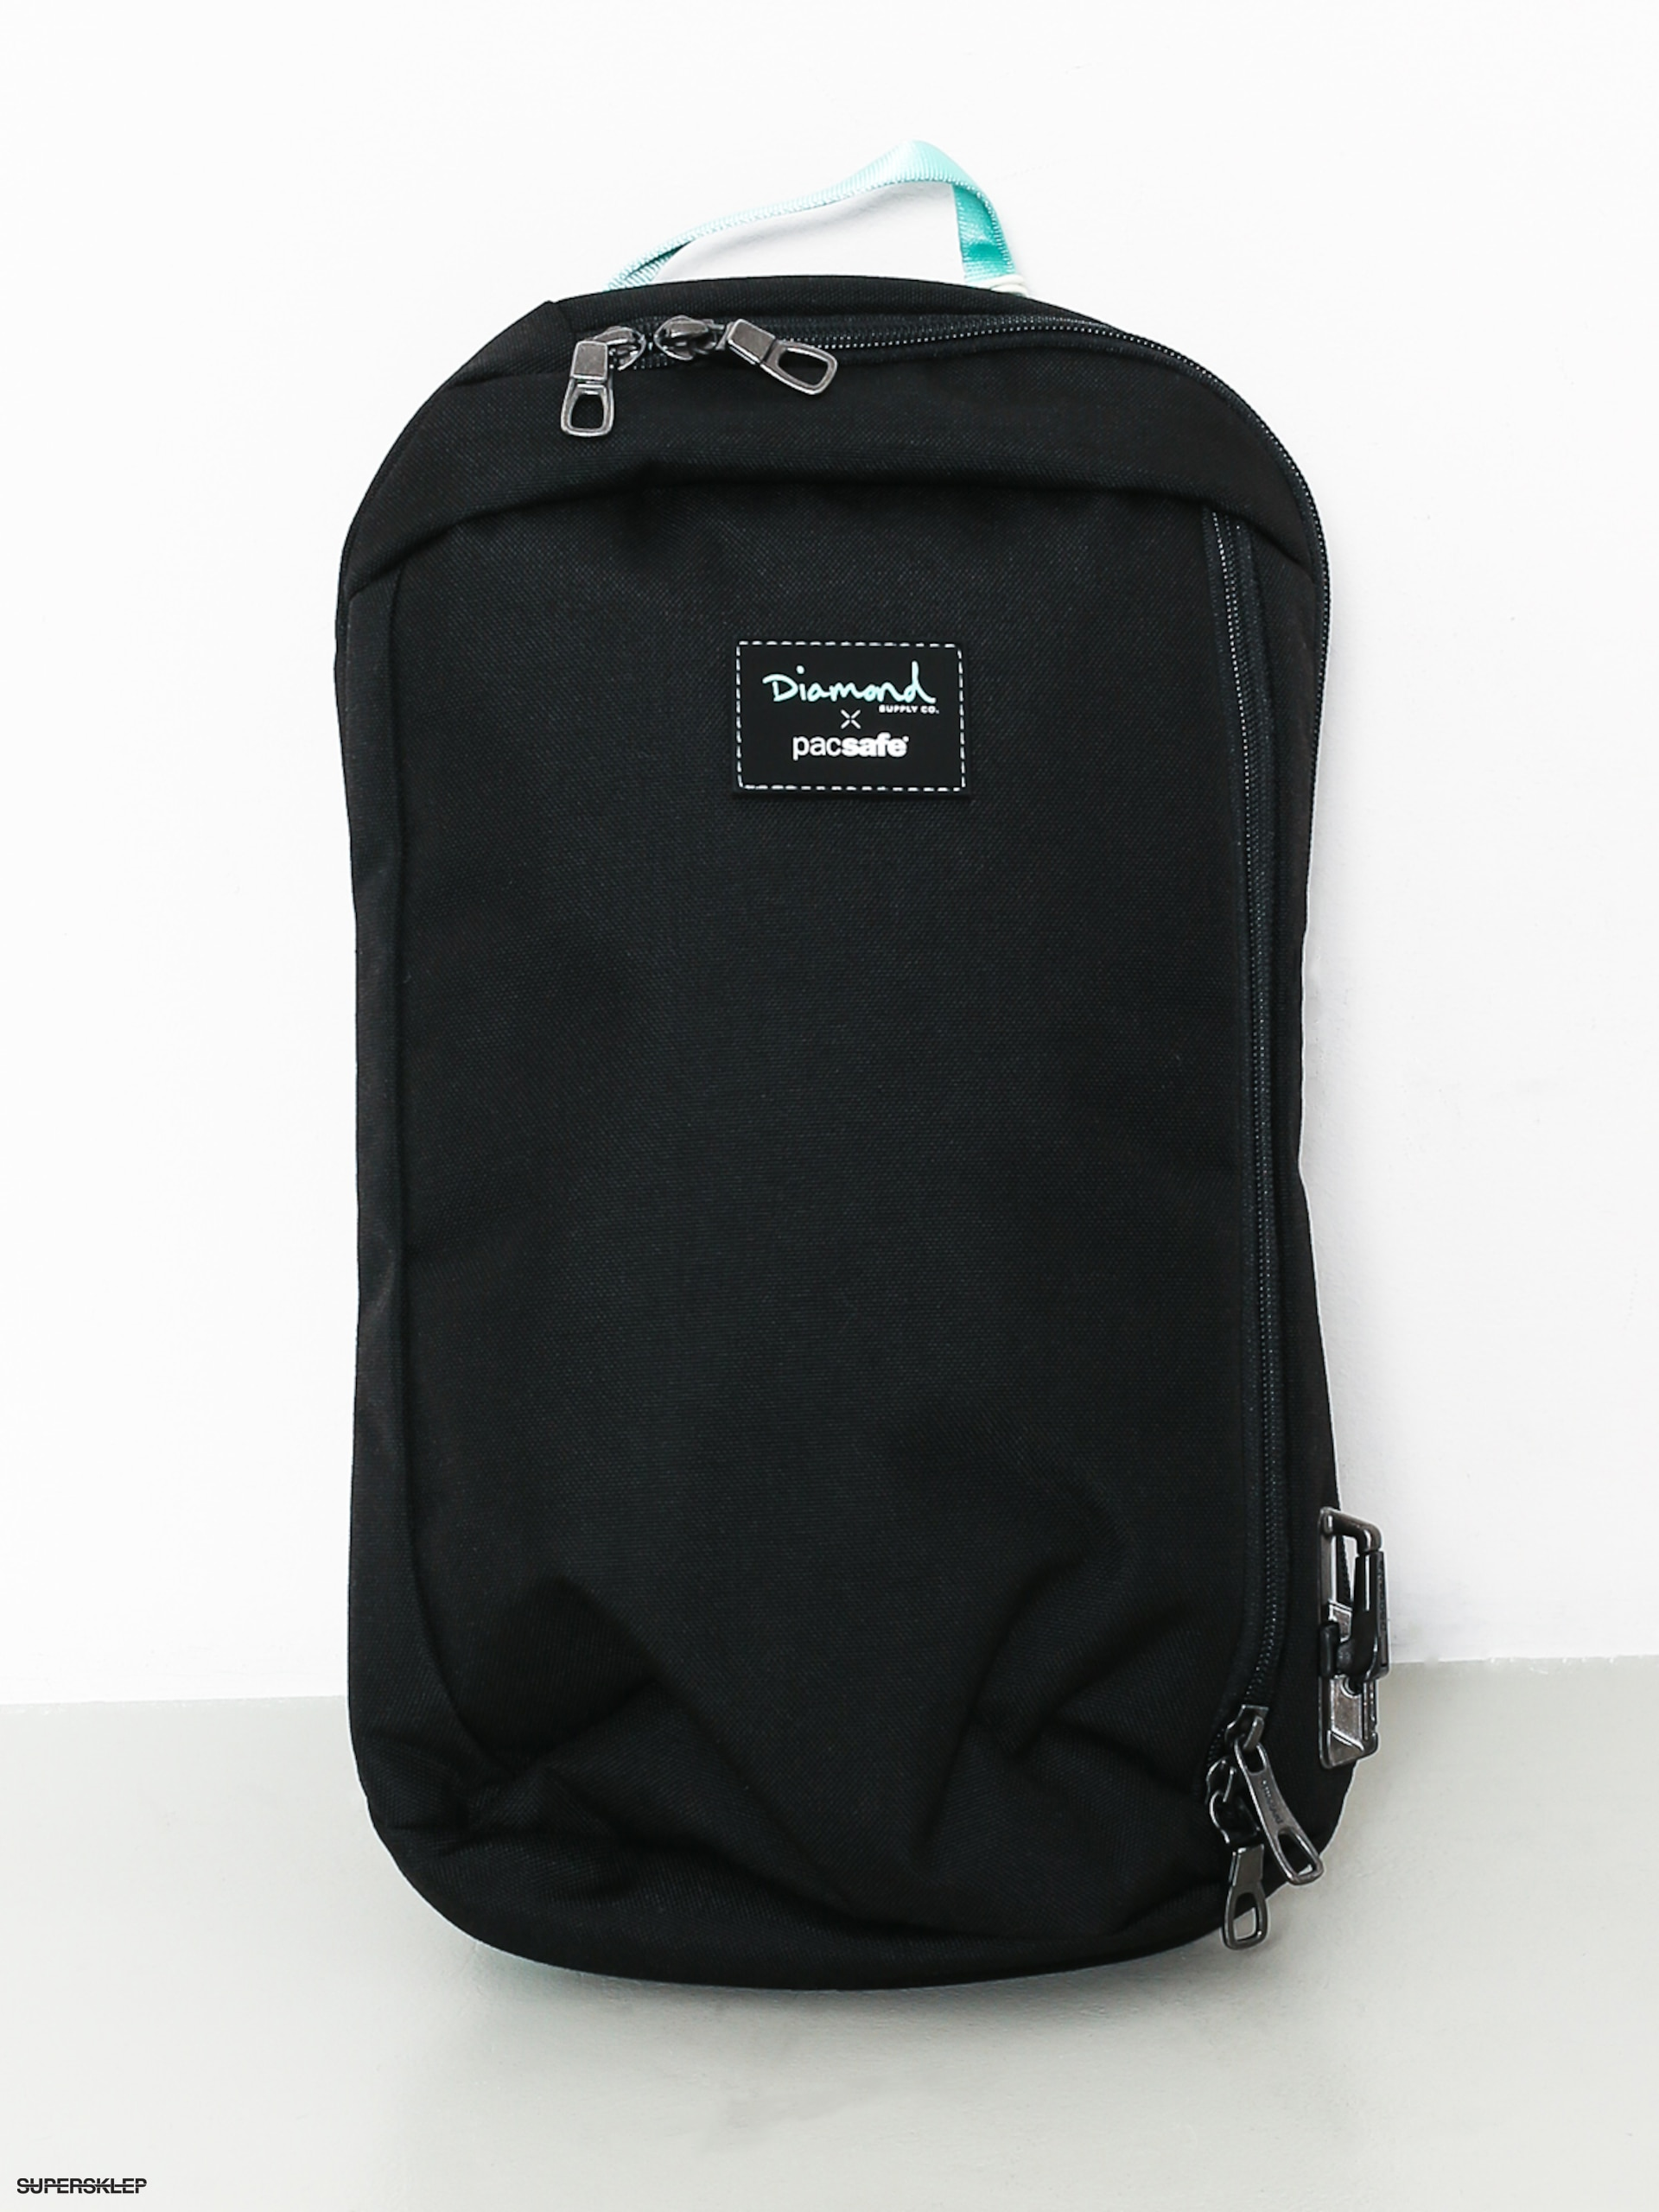 76b0343a417fb Plecak Diamond Supply Co. Dmndxpacsafe Sling Pack (black)